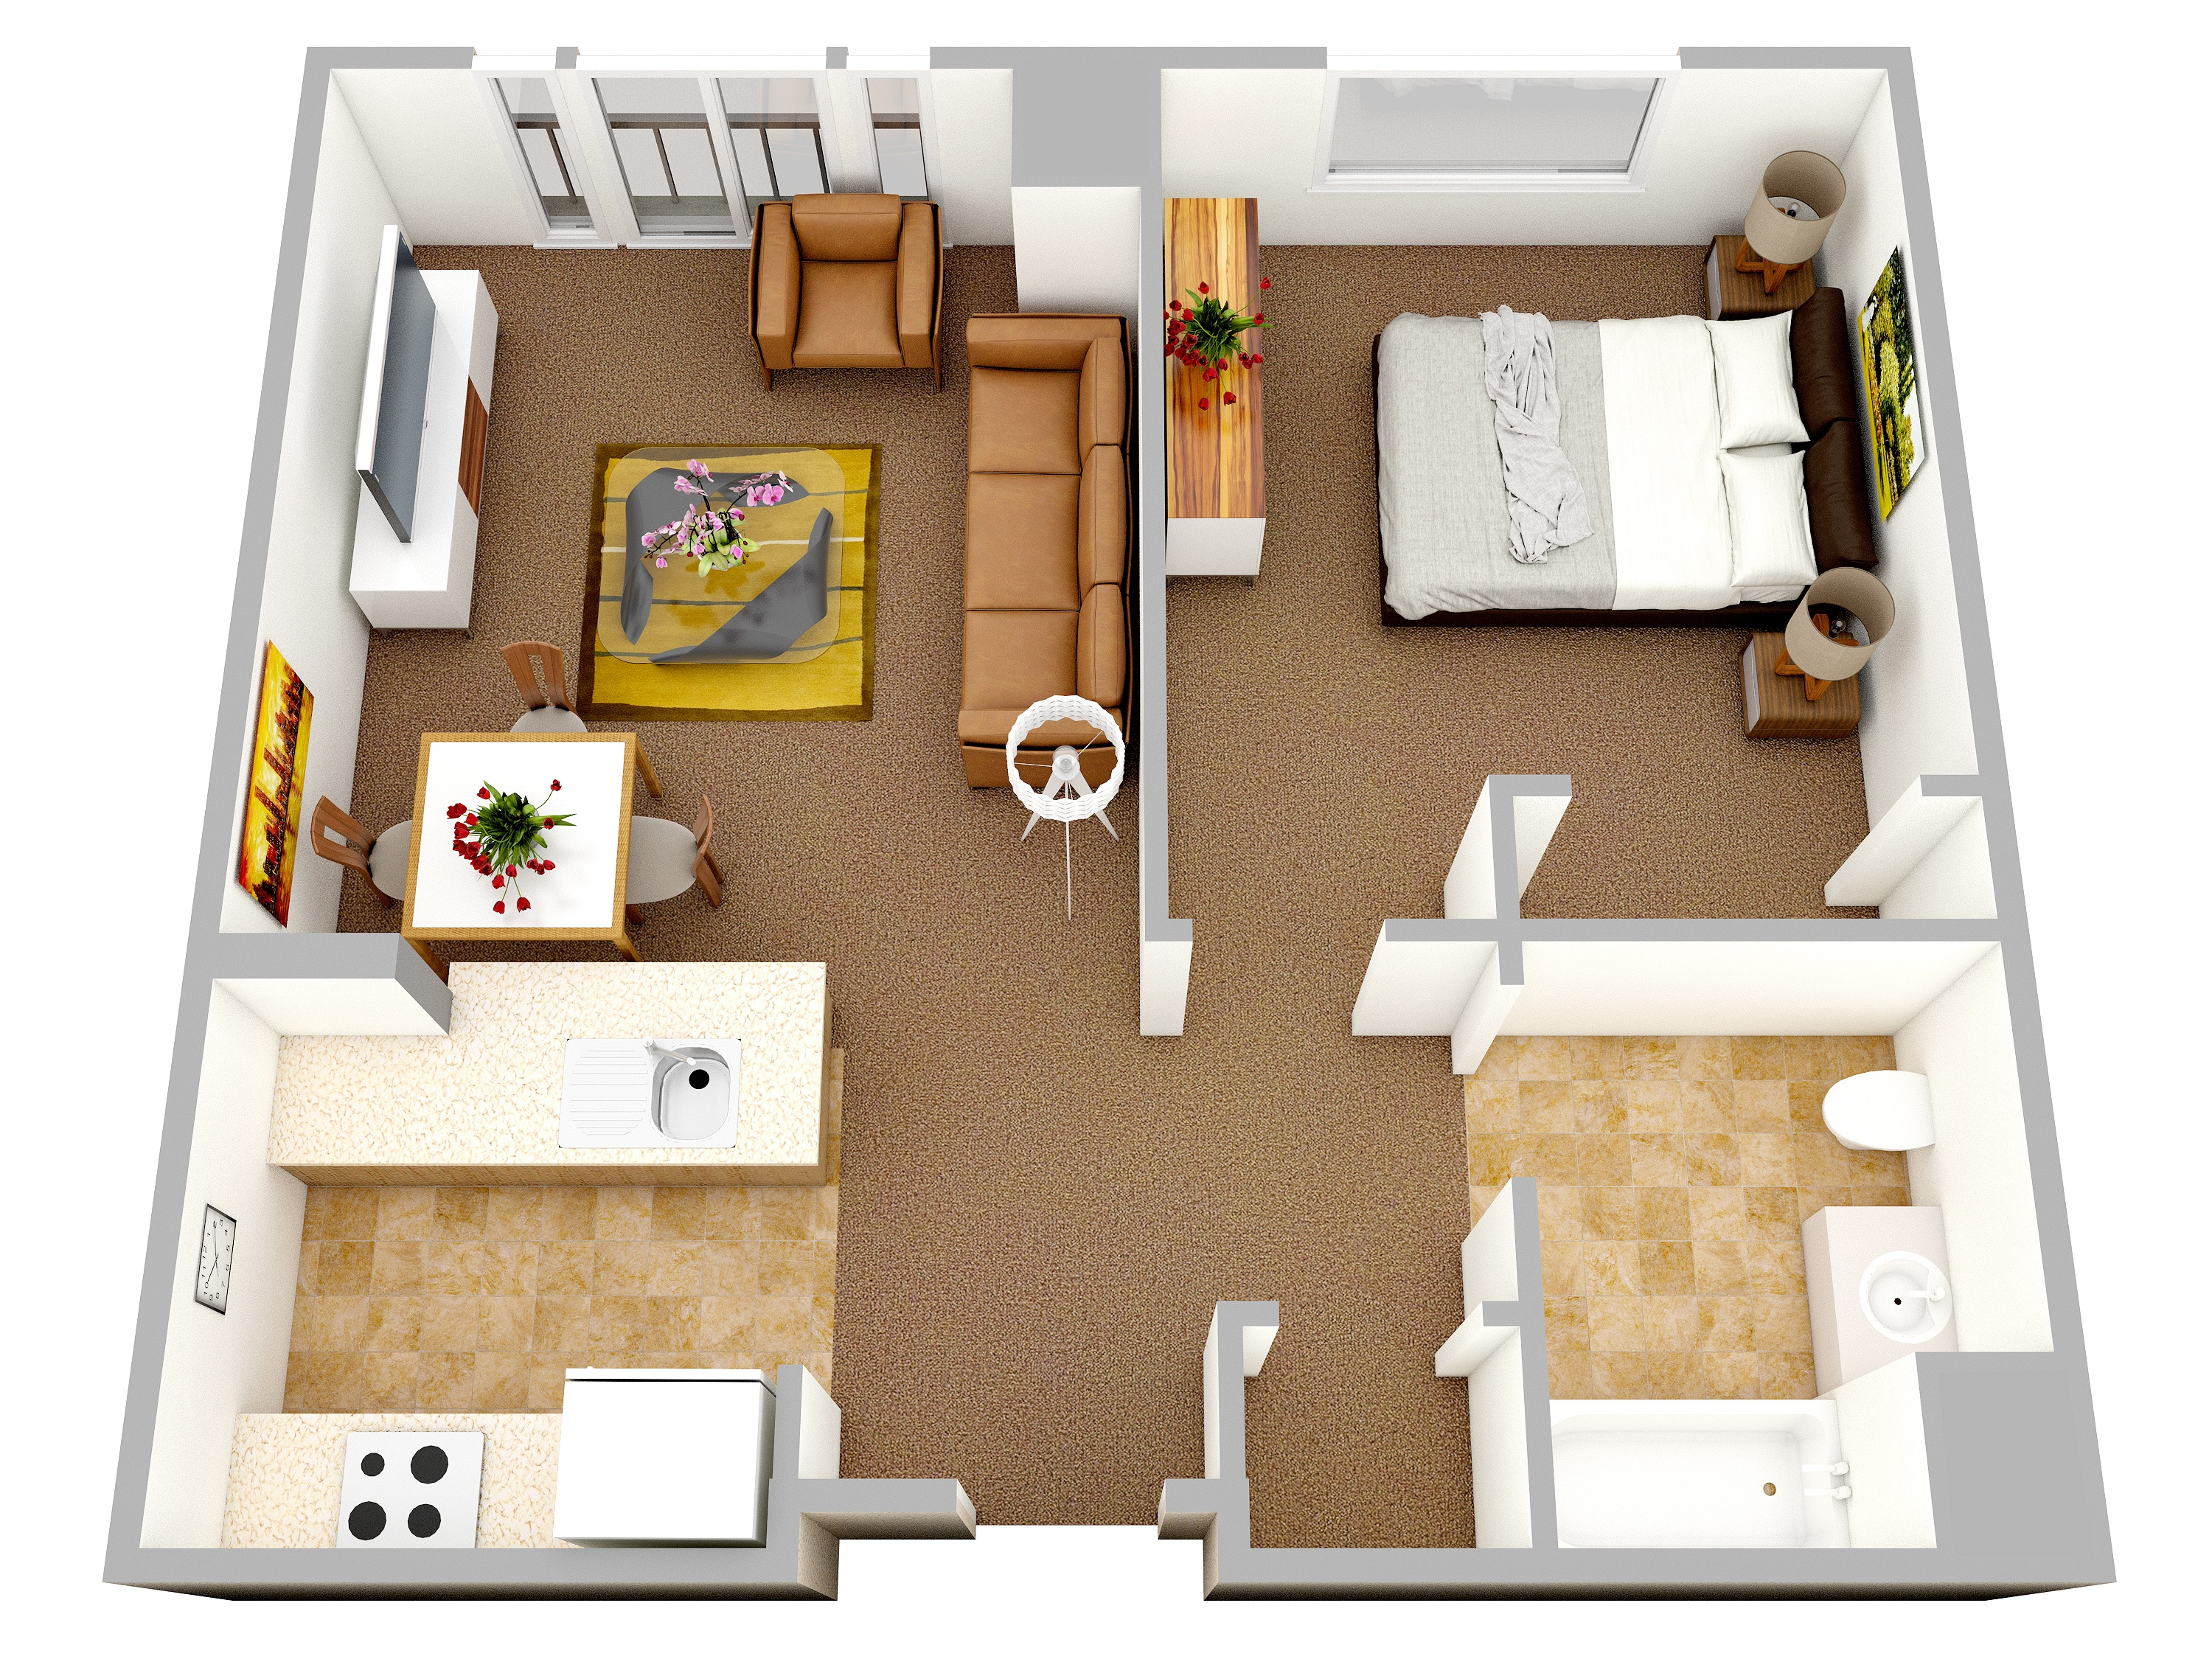 Apartment Building Design Ideas 1 bedroom apartment/house plans